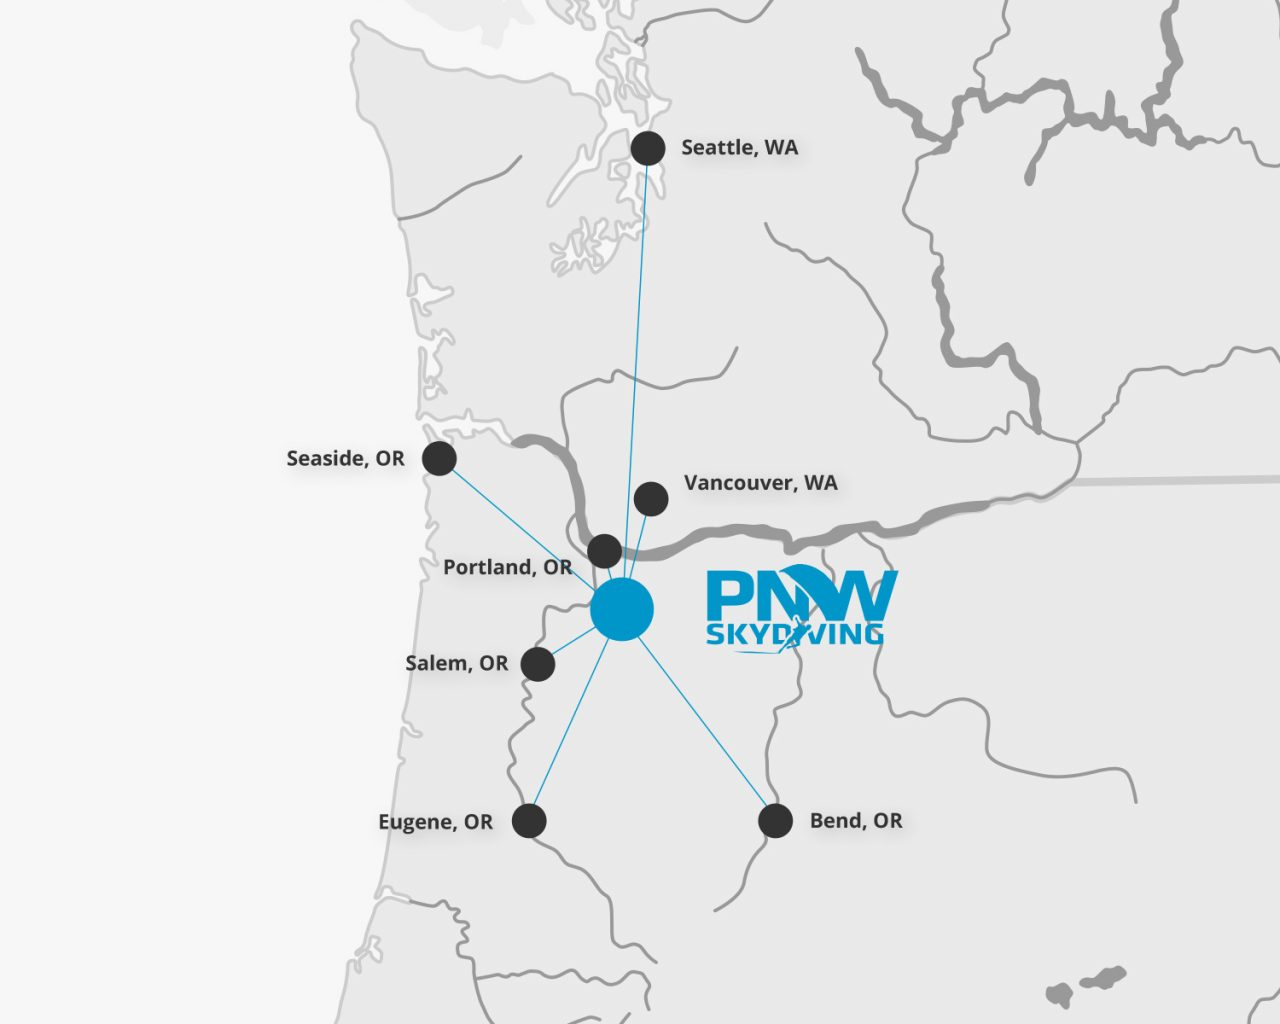 Proximity map showing the location of PNW Skydiving in relation to Portland, Salem, Eugene and Bend, OR